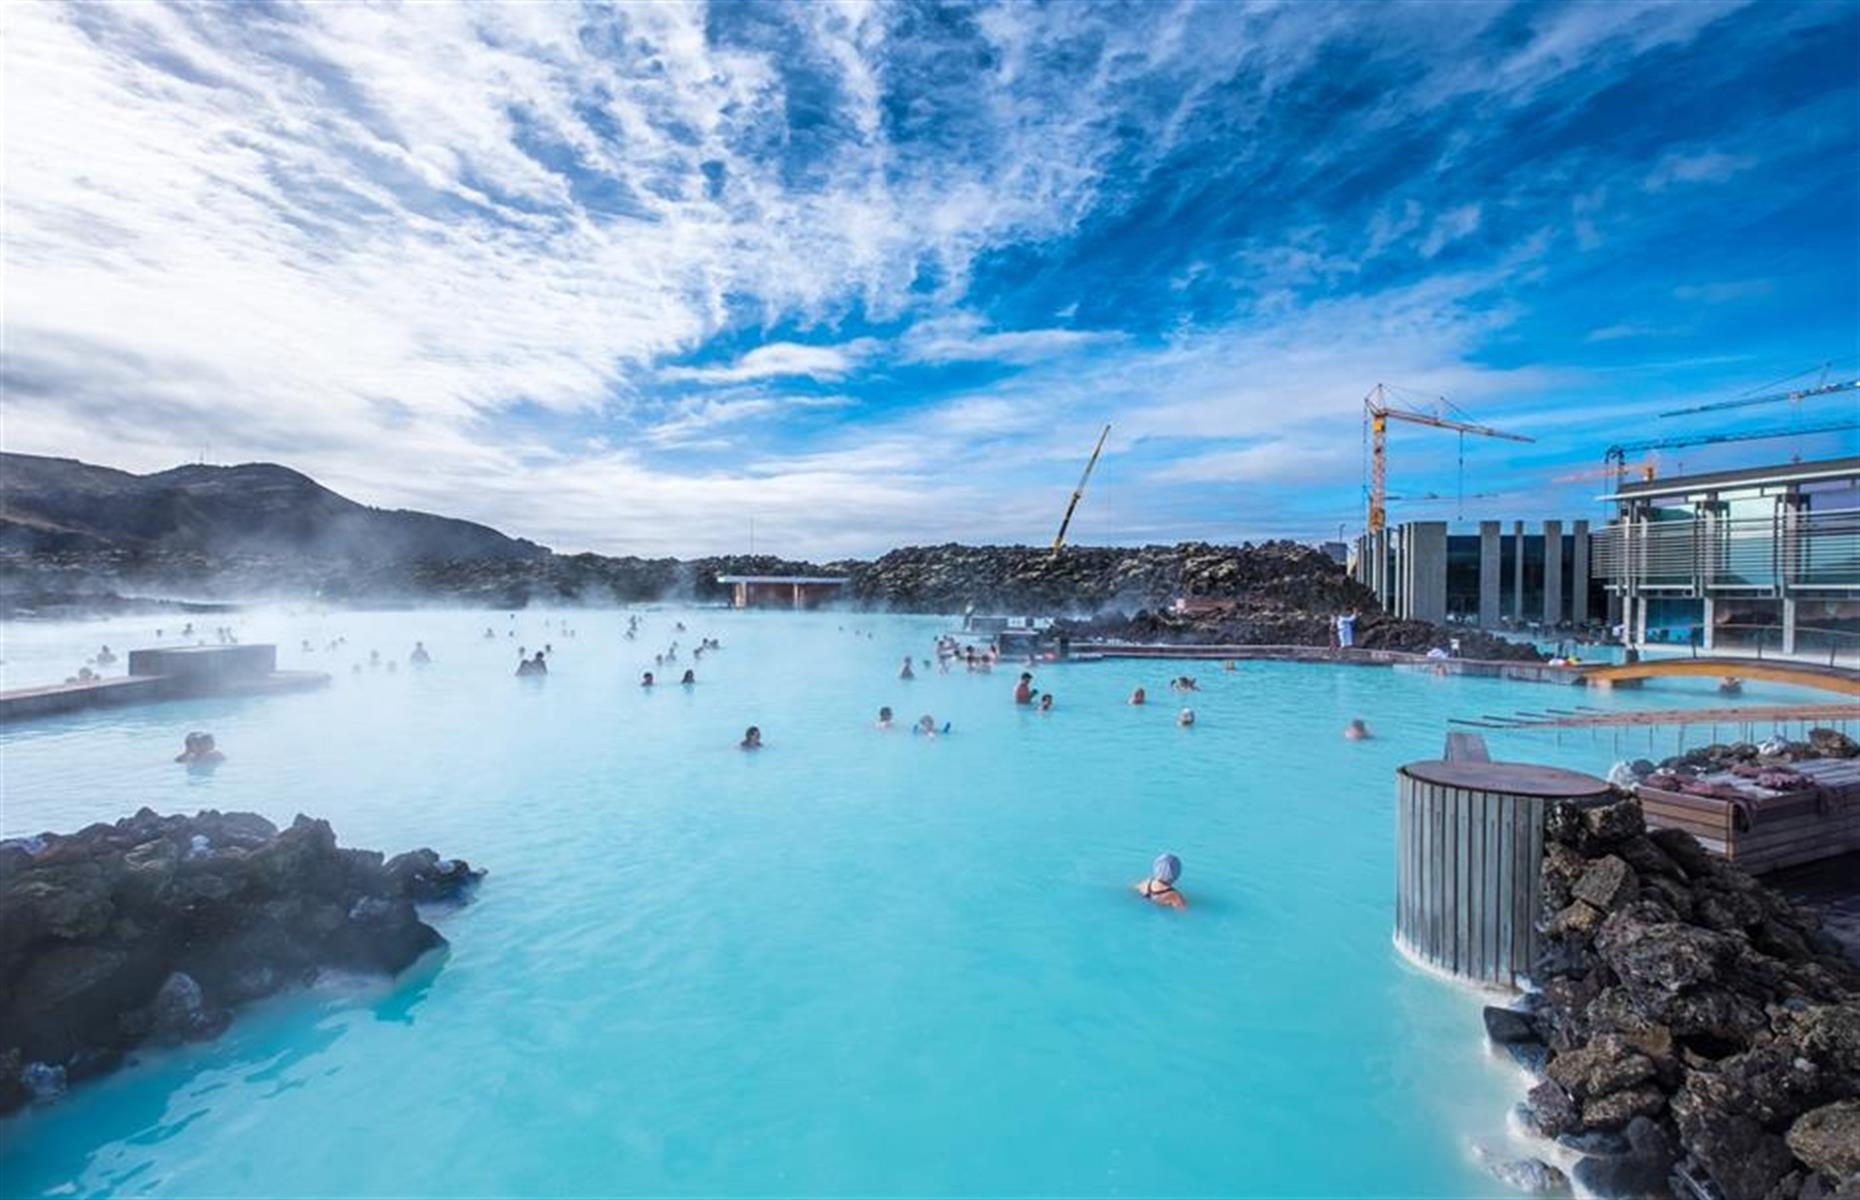 Slide 20 of 41: With its warm, milky-blue waters and dramatic volcanic landscape, there's little doubt Iceland's Blue Lagoon is a spectacular way to while away an afternoon. But it also comes with tourists, and lots of them. Some 1.2 million people arrived here in 2017, keen to wallow in the 98.6–104°F (37–40°C) waters, sweat it out in a sauna or steam room and plaster on a silica-rich face mask.